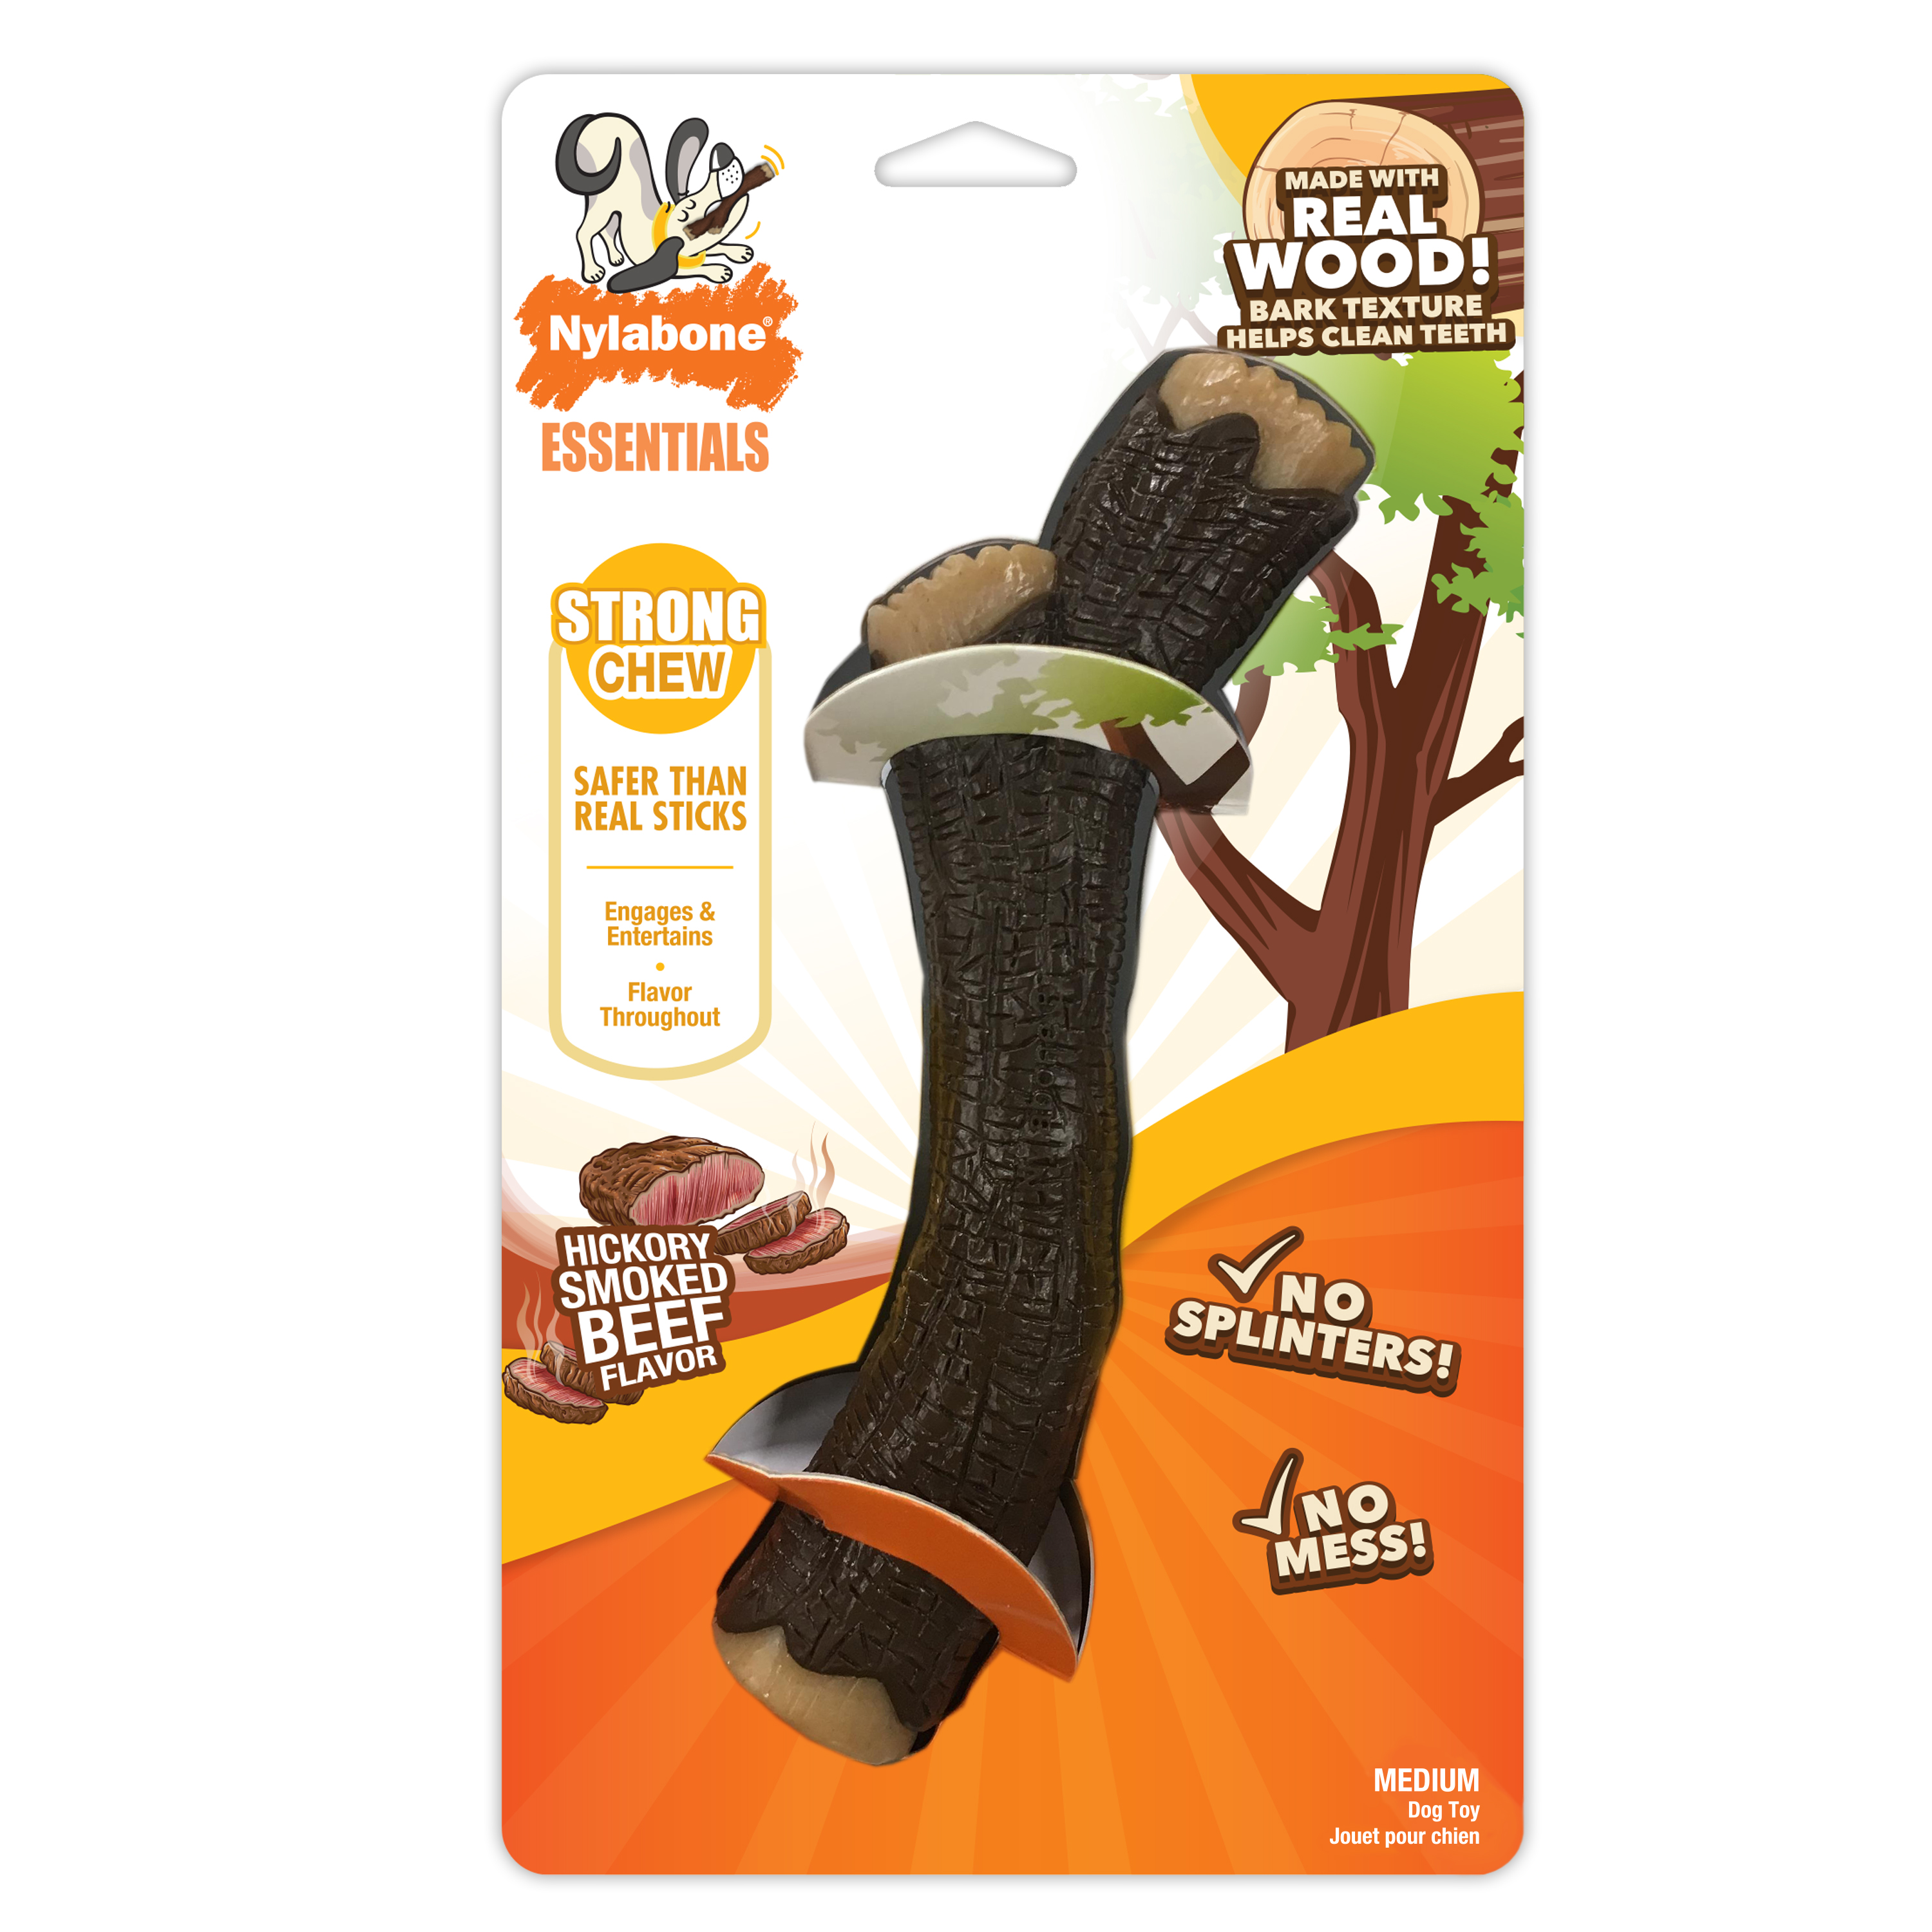 Nylabone Stick Dog Chew Toy, Hickory Smoked Beef, Medium